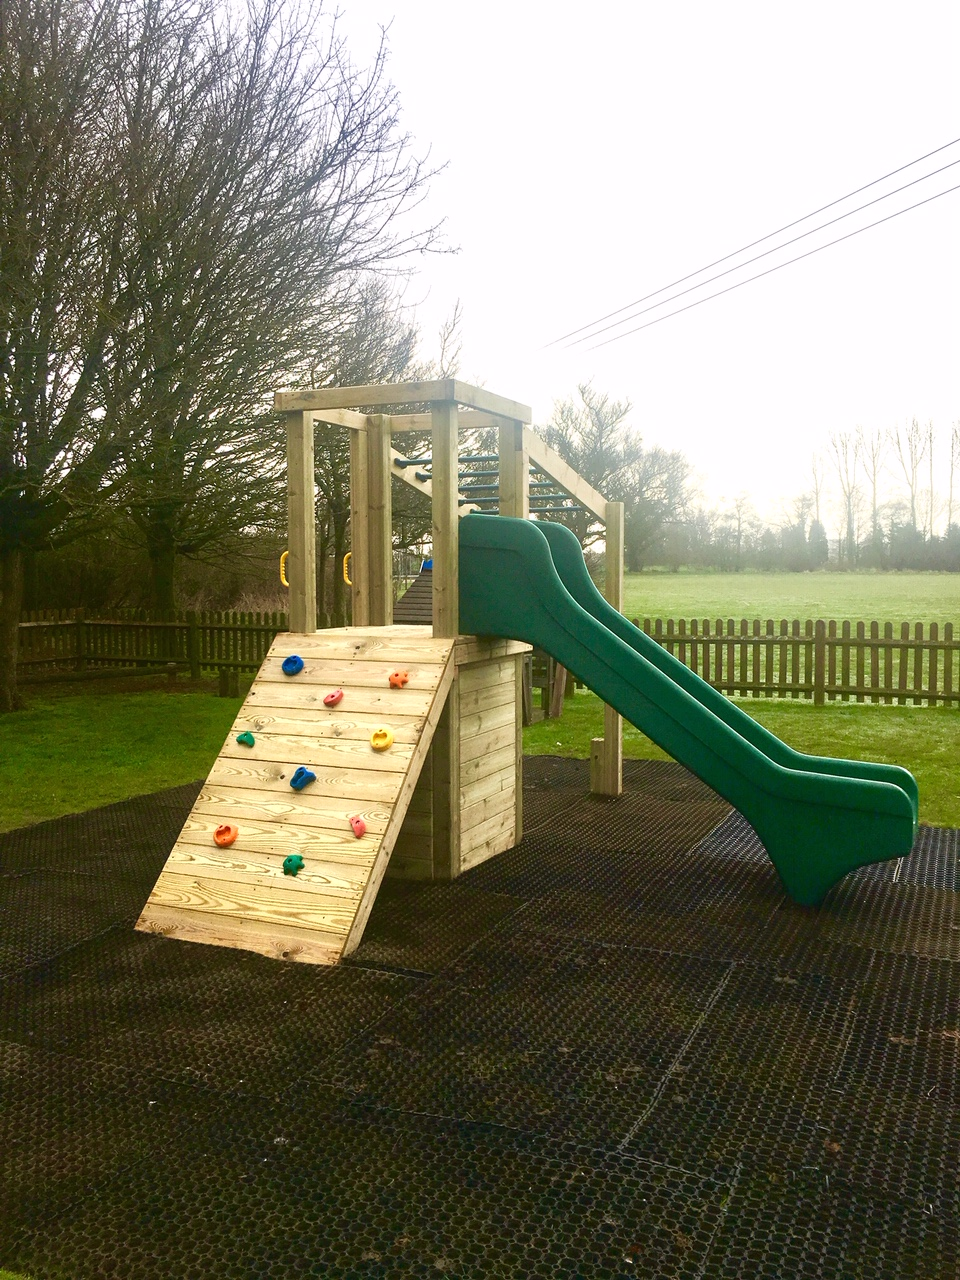 Mersham Sports Club reopened the children's play park at their Flood Street ground